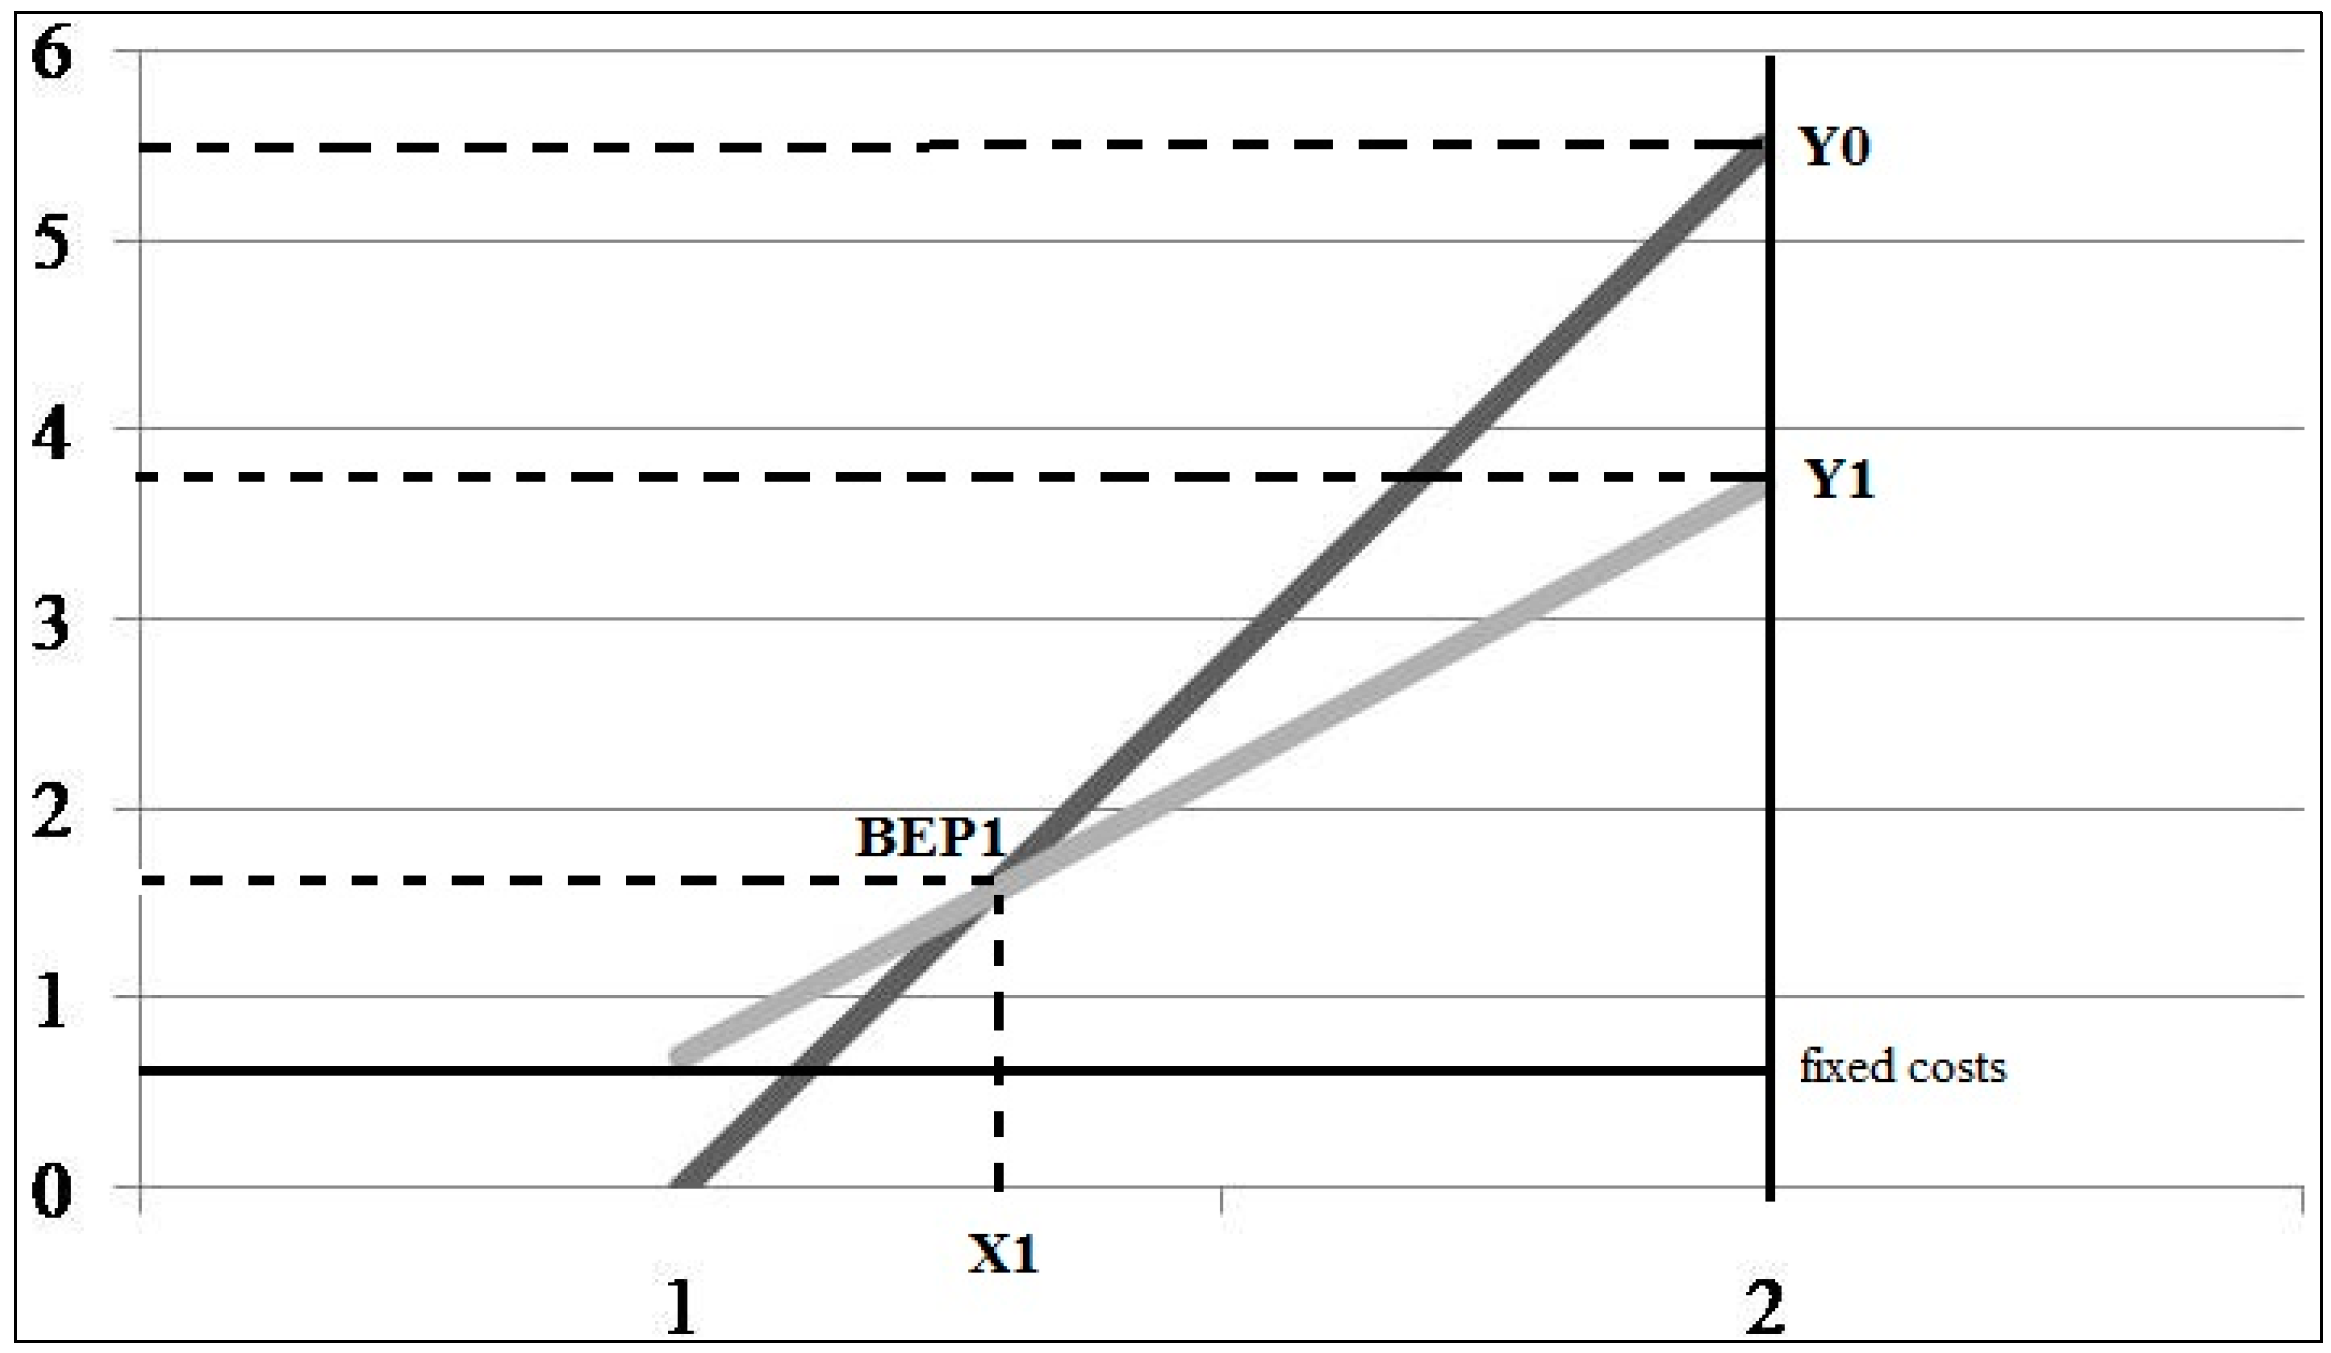 factors of production and agricultural development Number of economic factors contributed to agricultural production growth during  the reform period the earliest empirical studies focused on measuring the role.